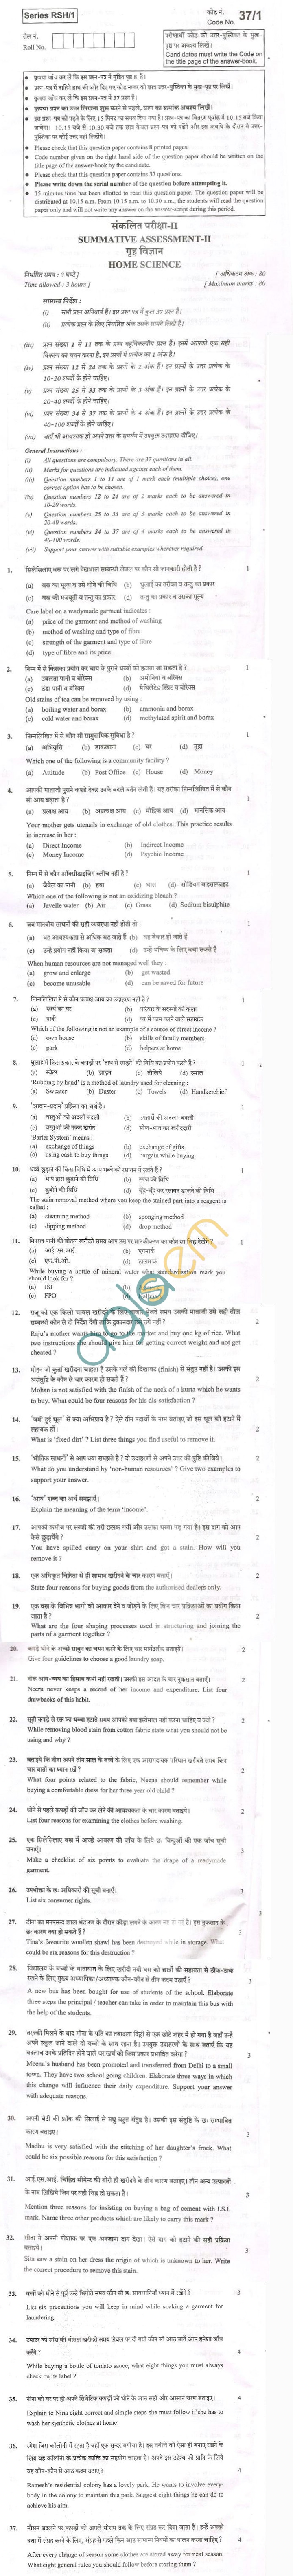 CBSE Board Exam 2013 Class X Question Paper - Home Science